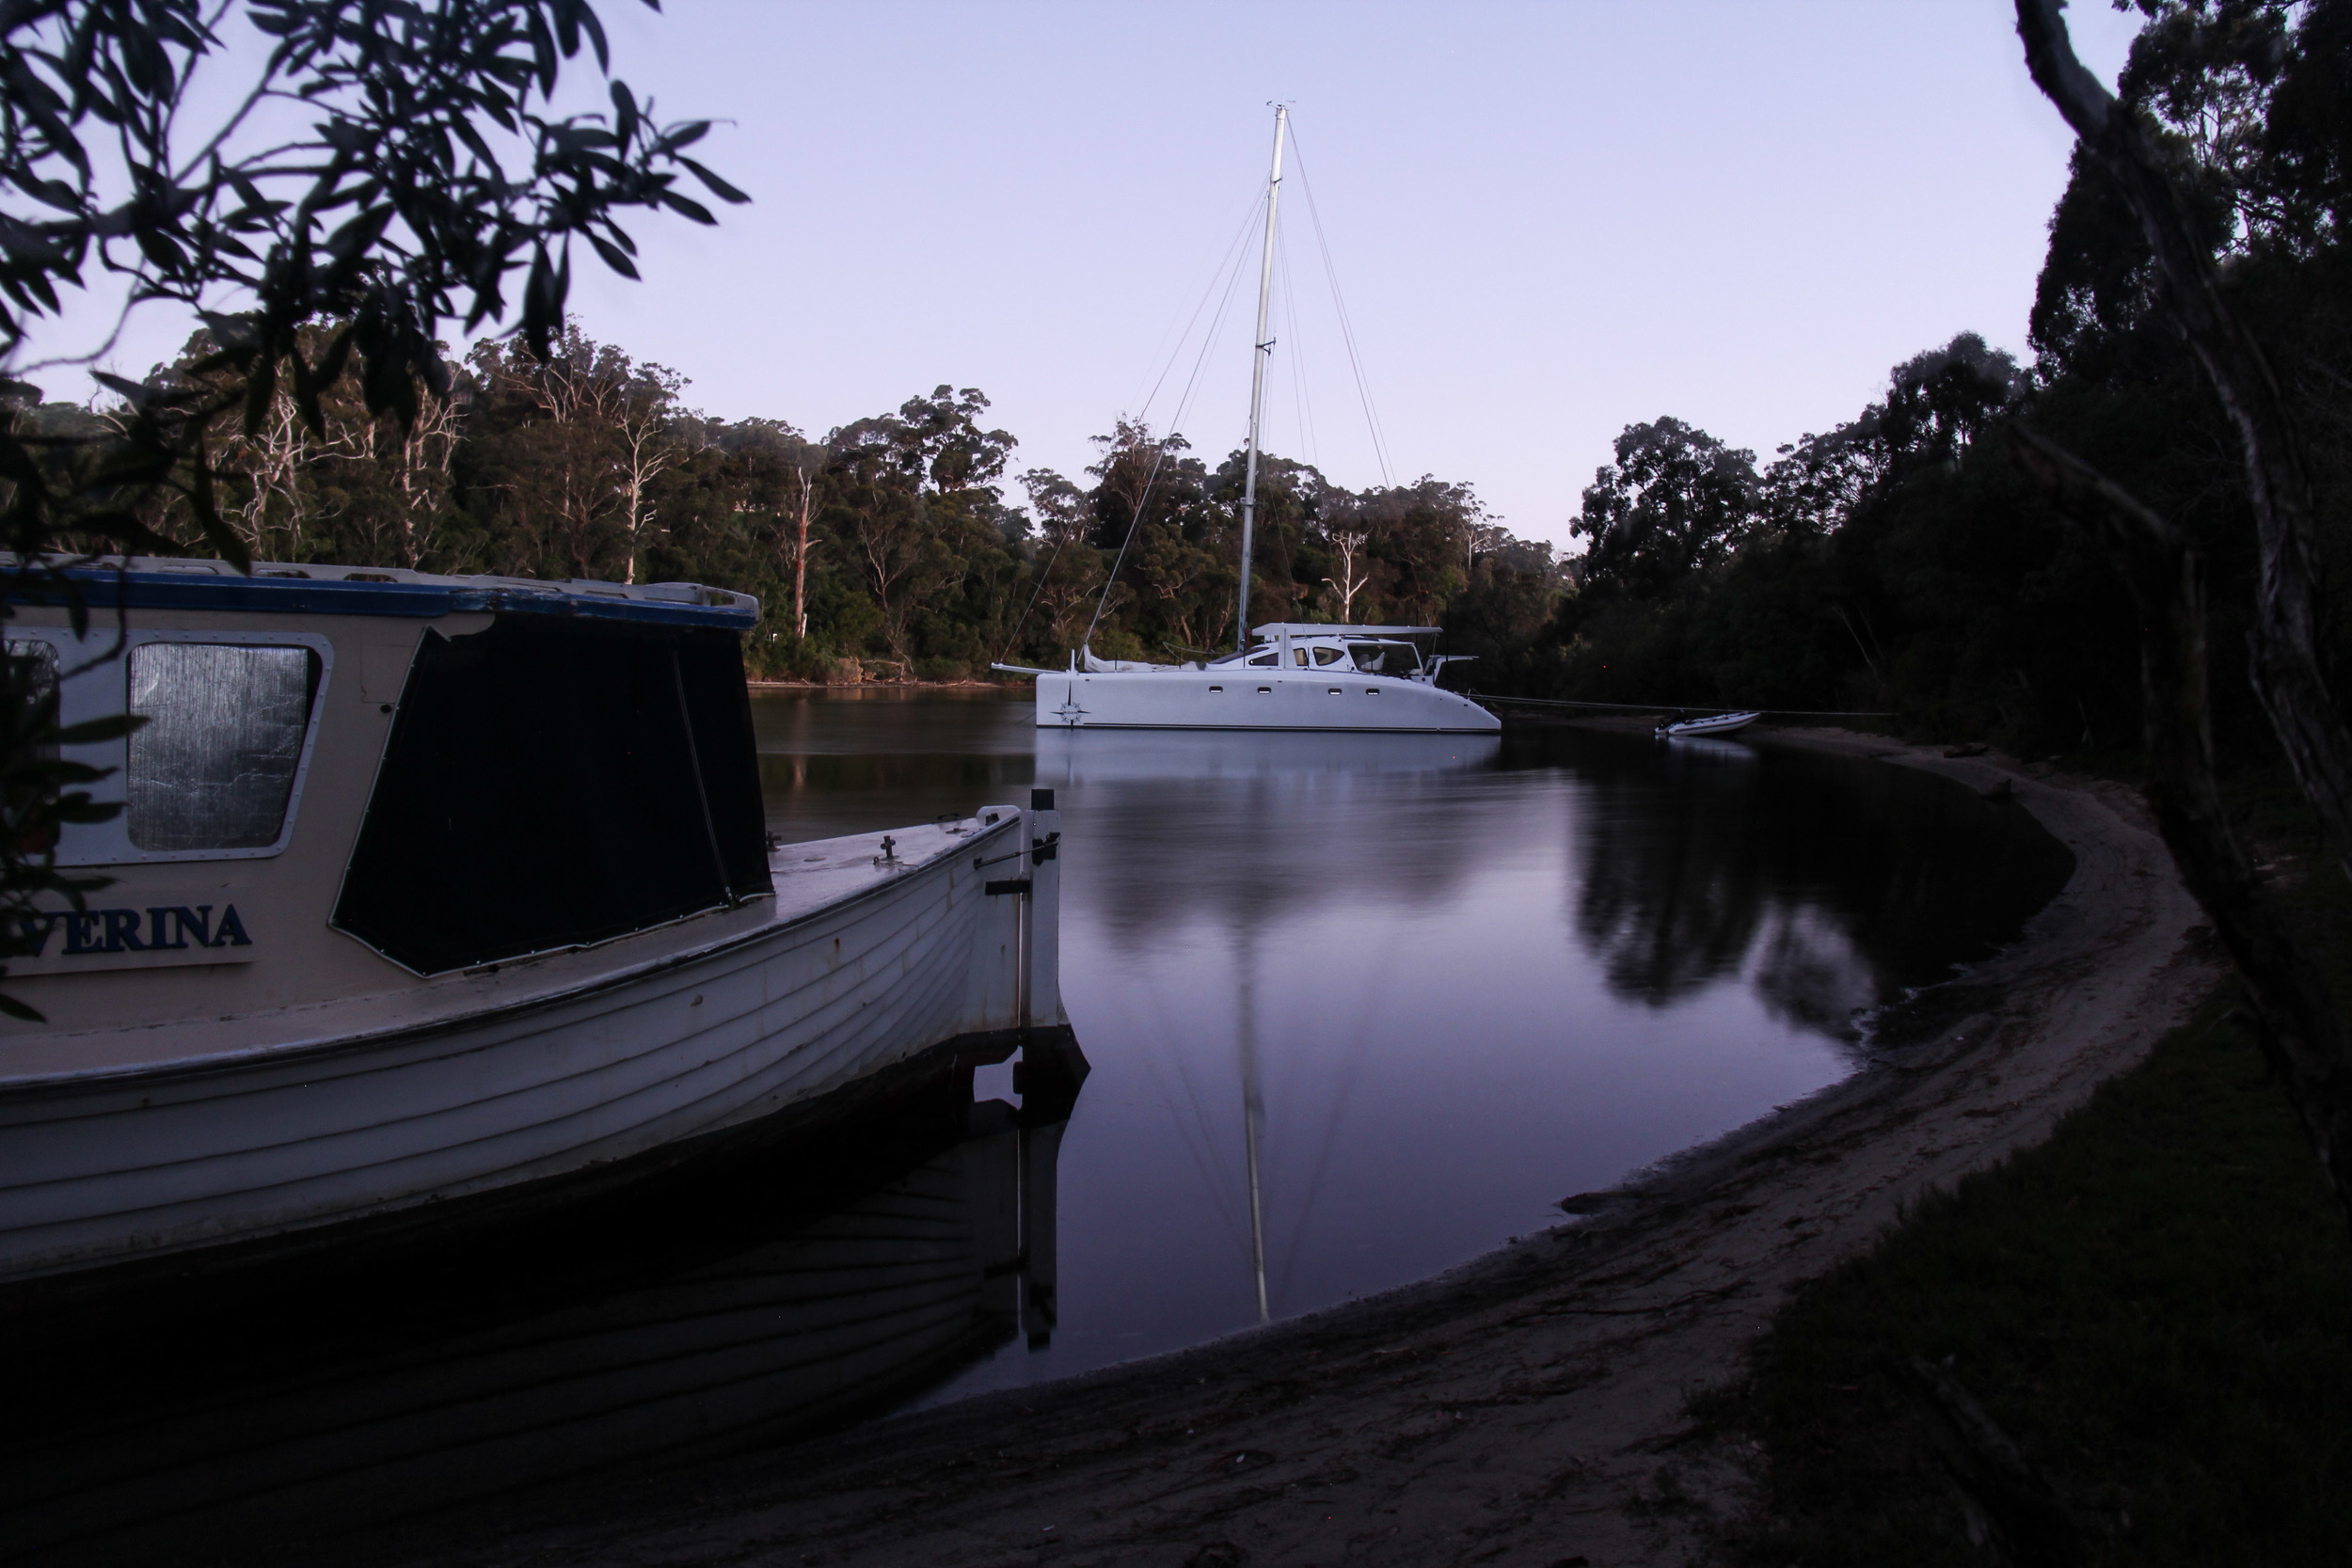 Still night in Boxes creek, not a ripple on the water.